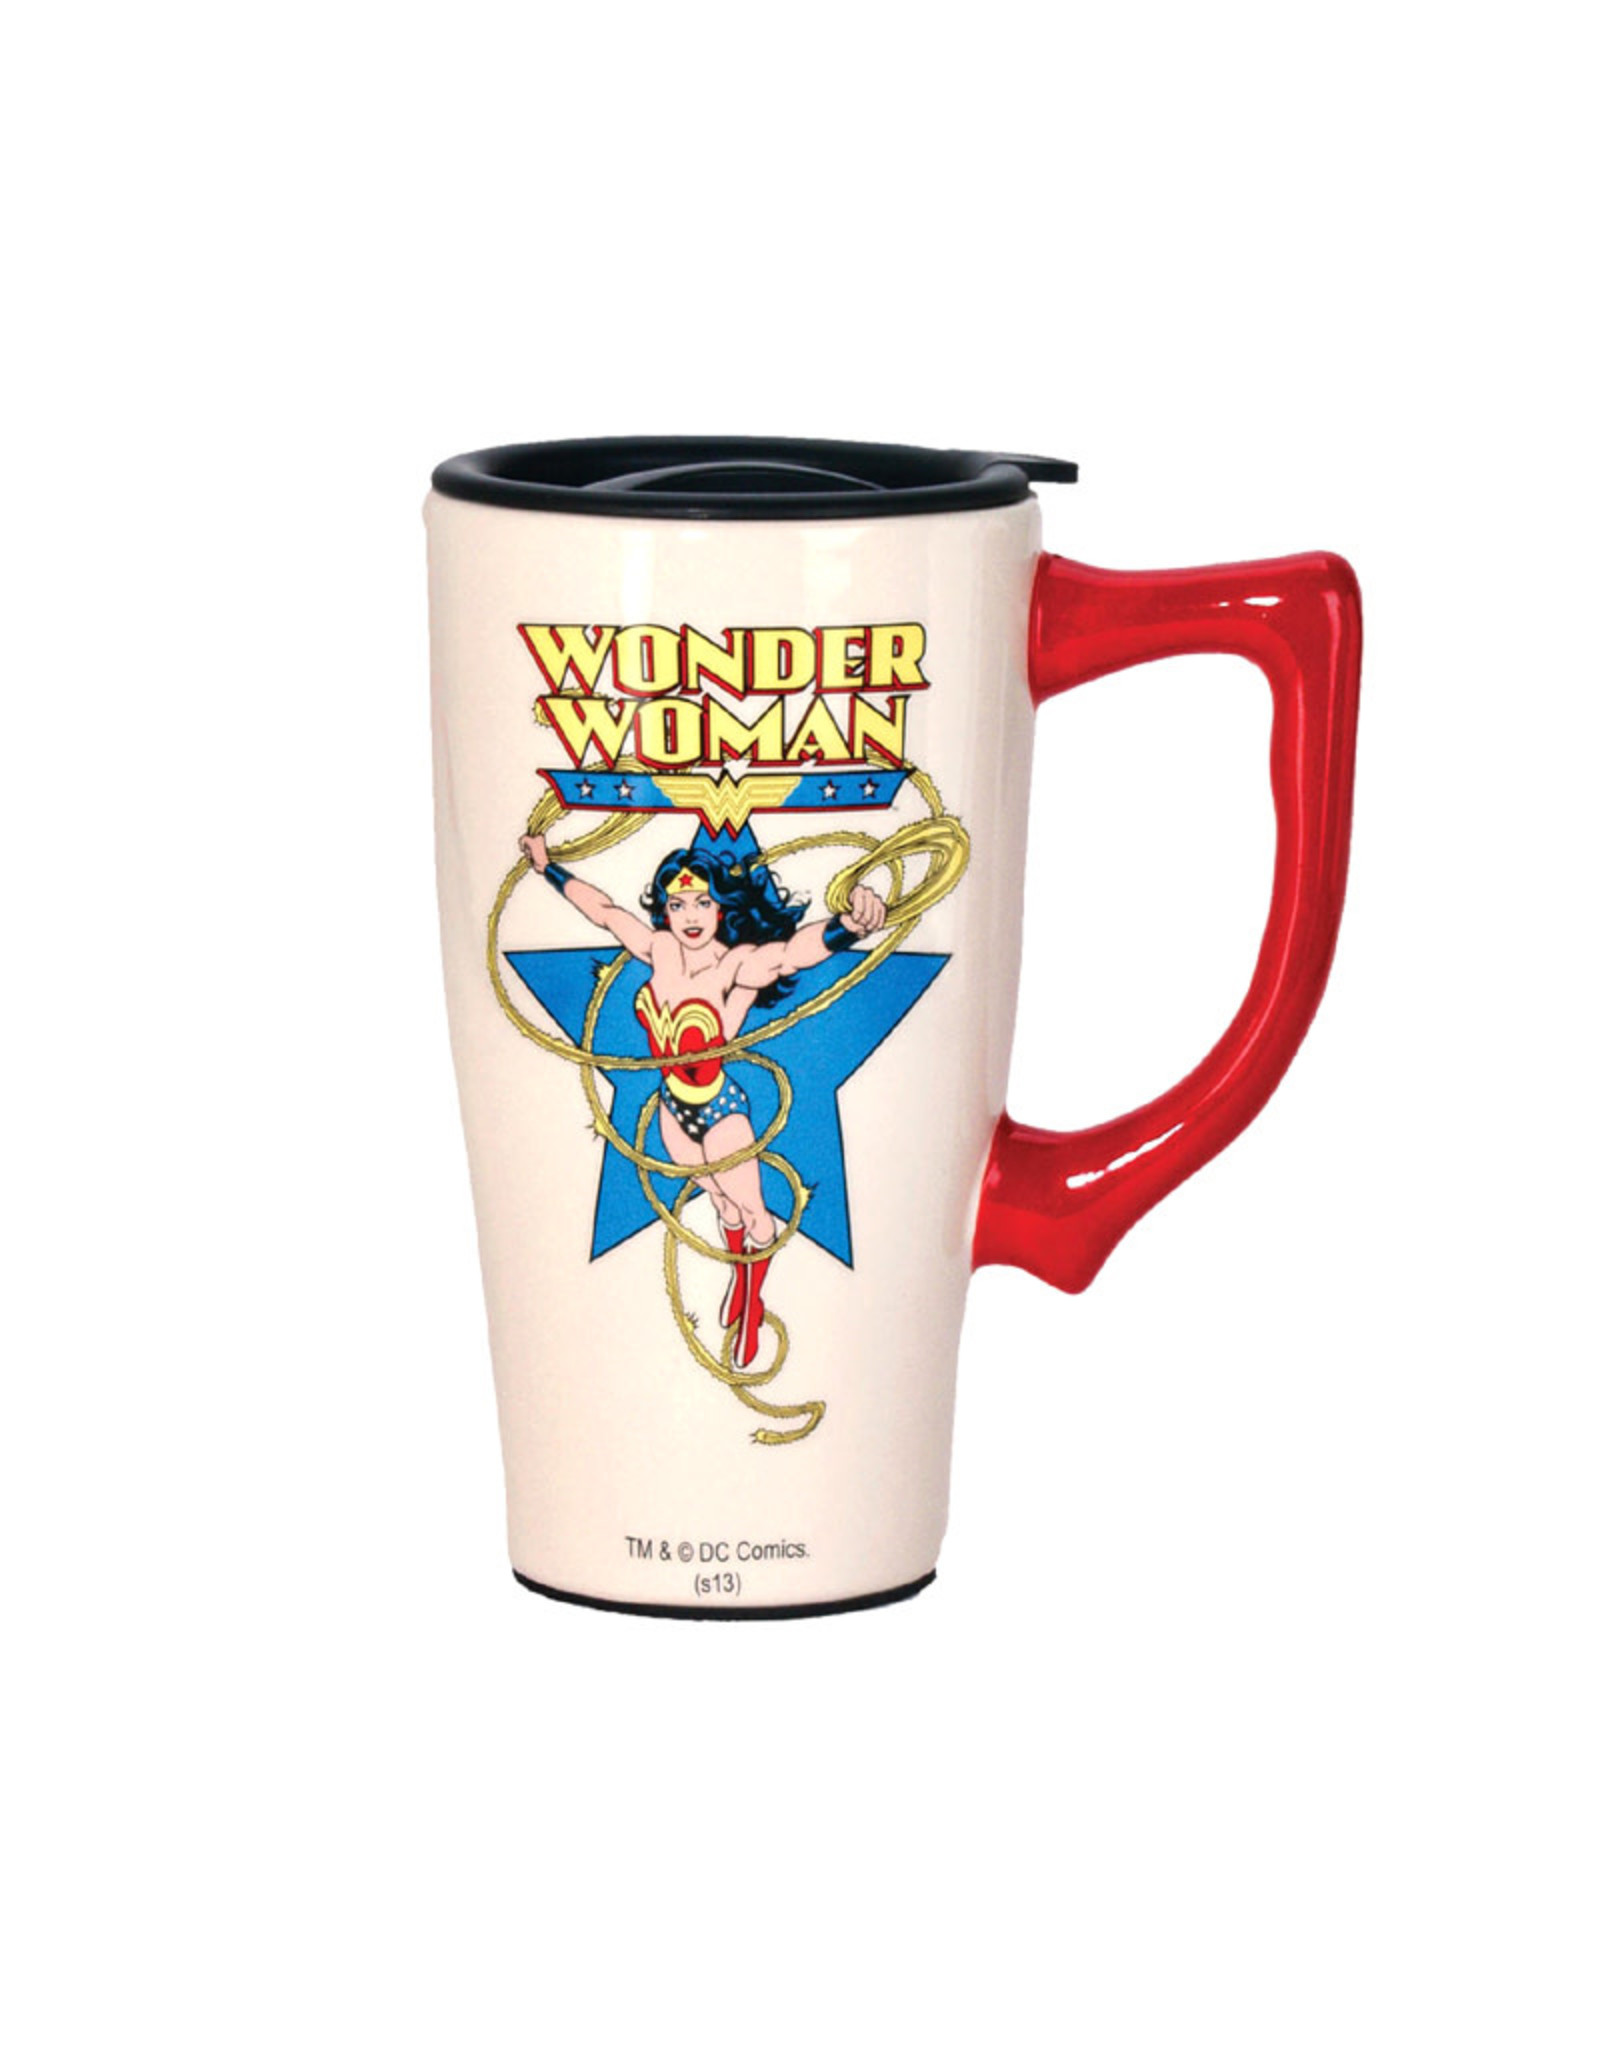 Dc comics Dc comics ( Ceramic Travel Mug ) Wonder Woman Character